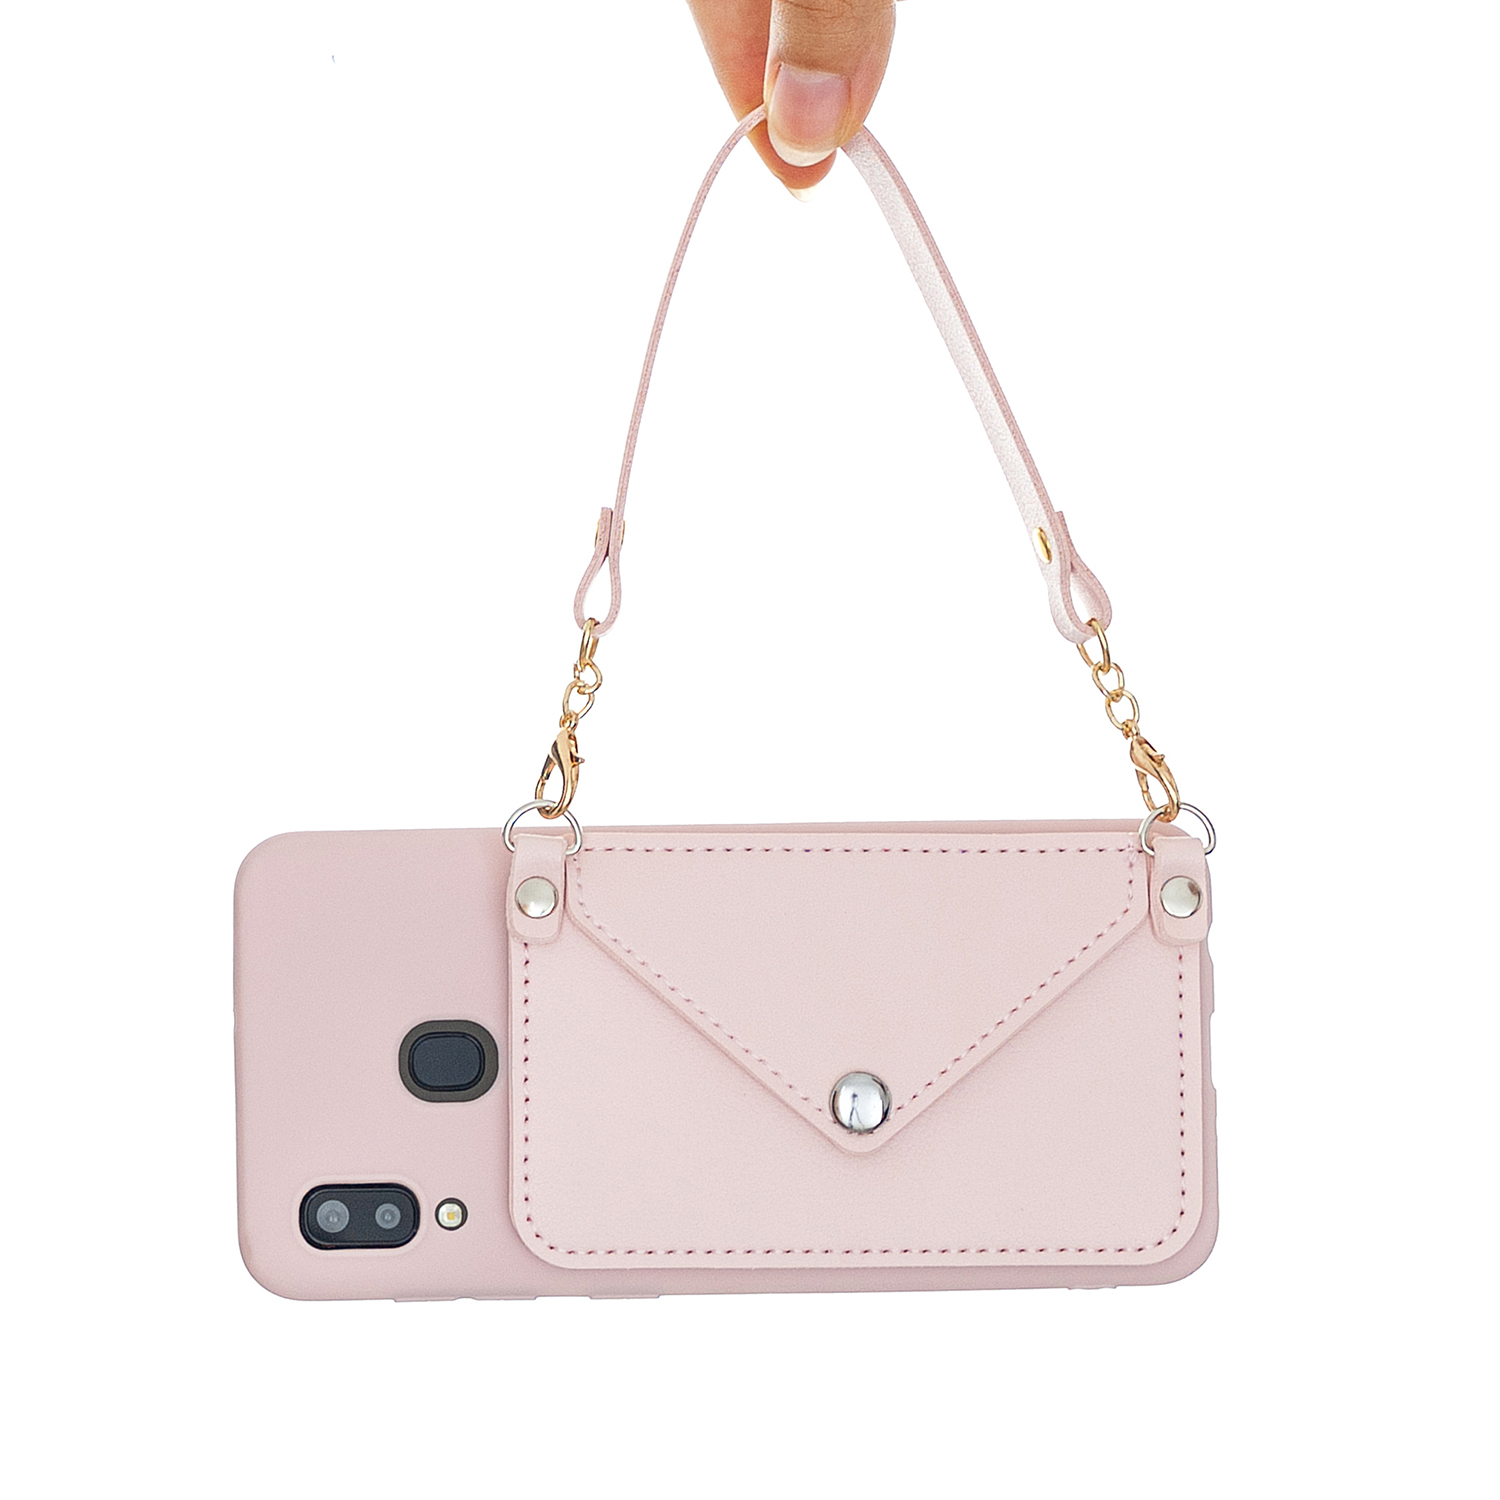 For HUAWEI Y5 2018/2019/Y6 2019/Y7 2019/PSMART Z/Y9 2019 Mobile Phone Cover with Pu Card Holder + Hand Rope + Straddle Rope Pink